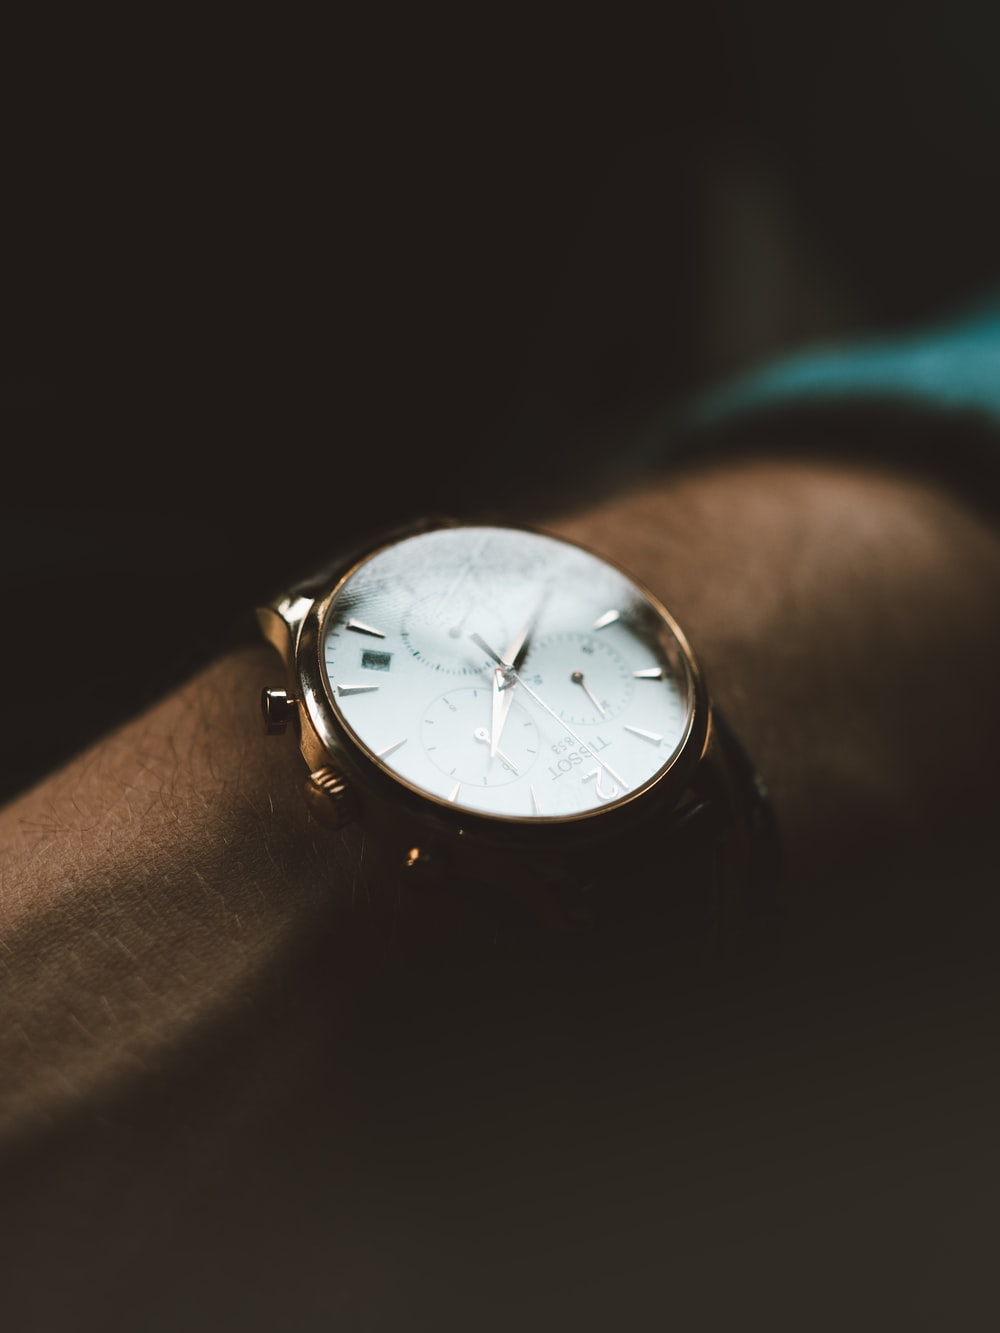 person wearing white chronograph watch